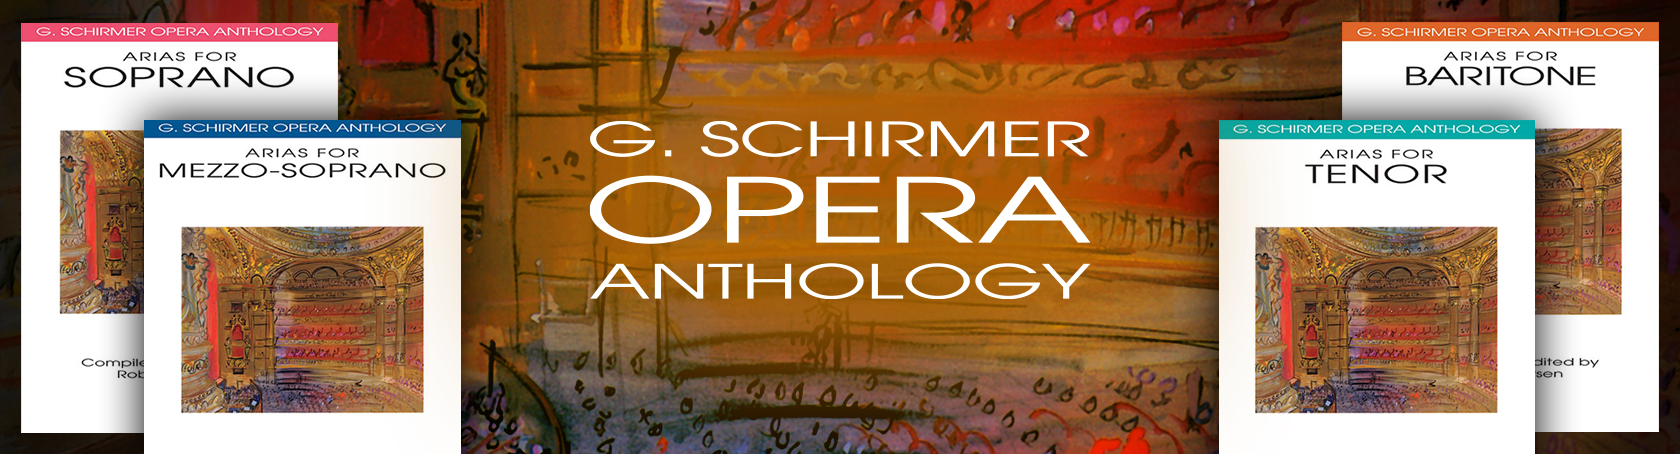 G Schirmer Opera Anthology